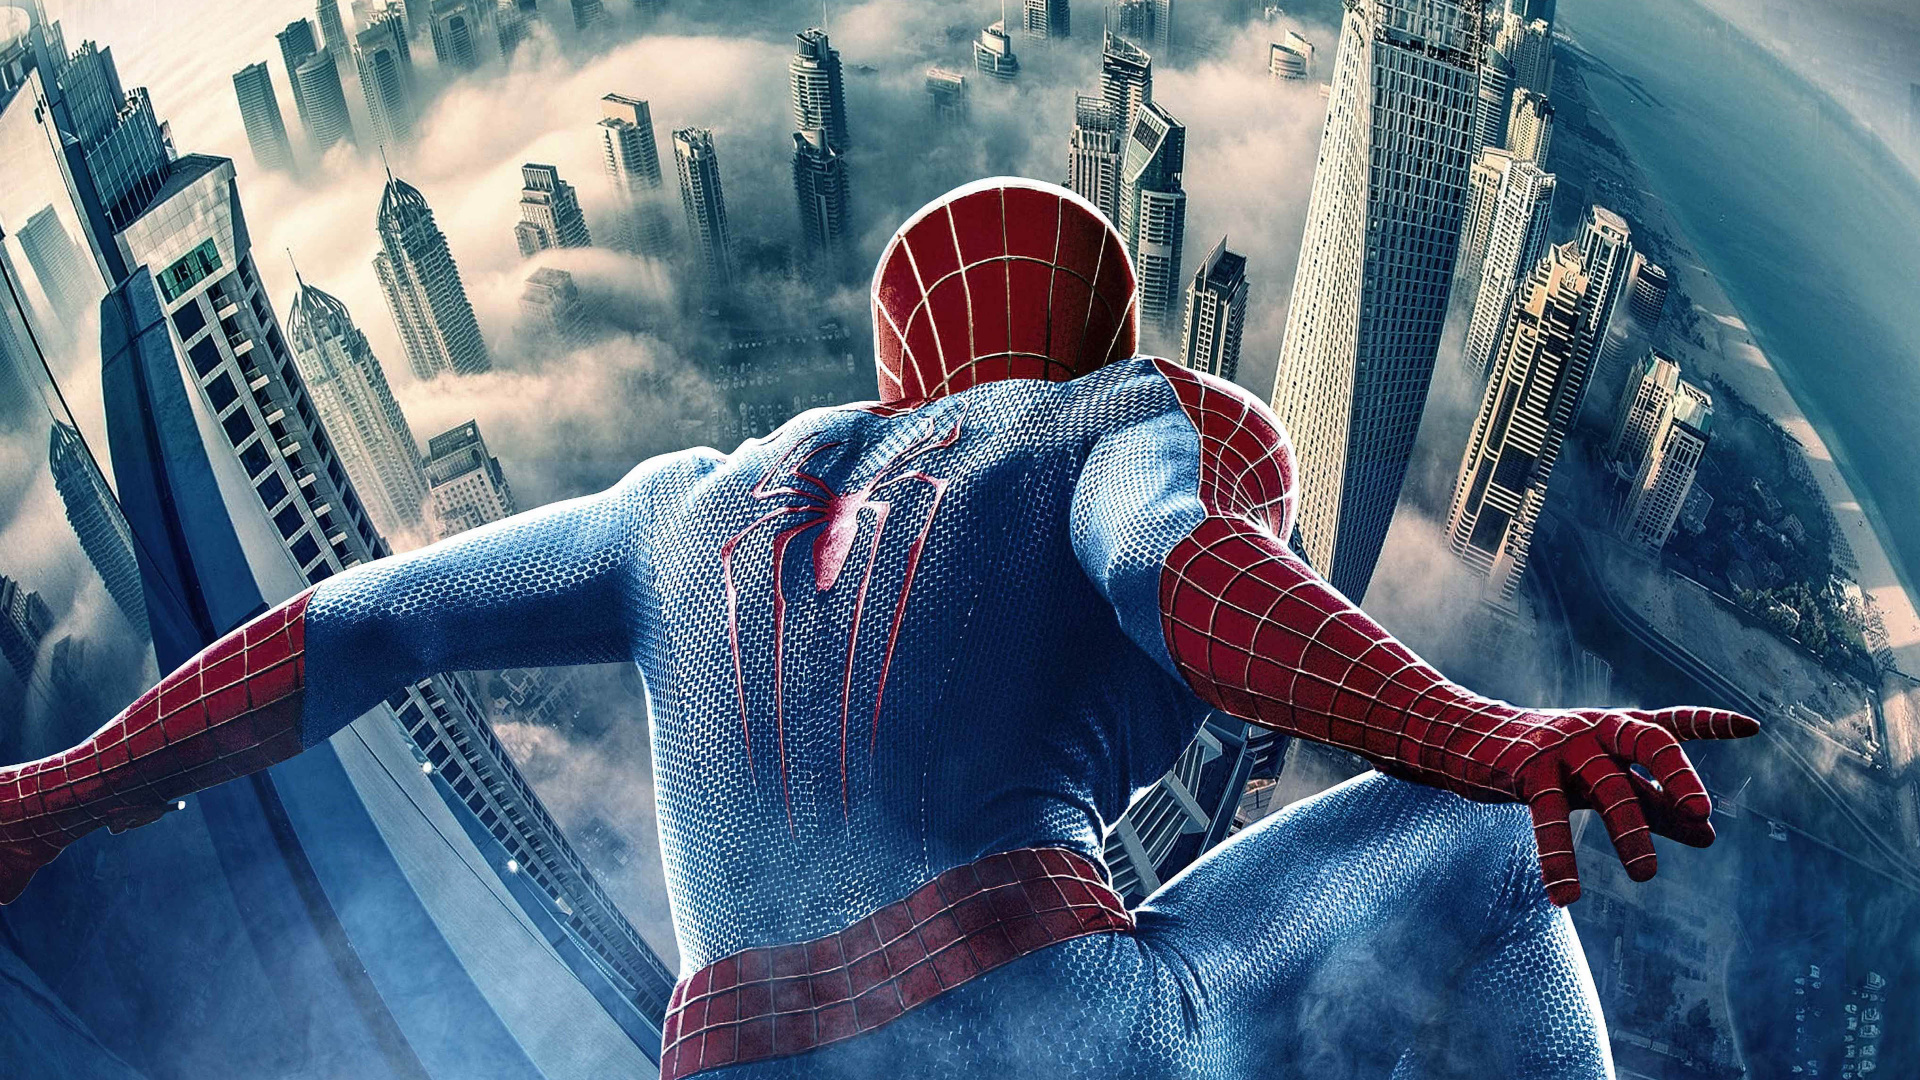 1920x1080 Spider Man 1080p Laptop Full Hd Wallpaper Hd